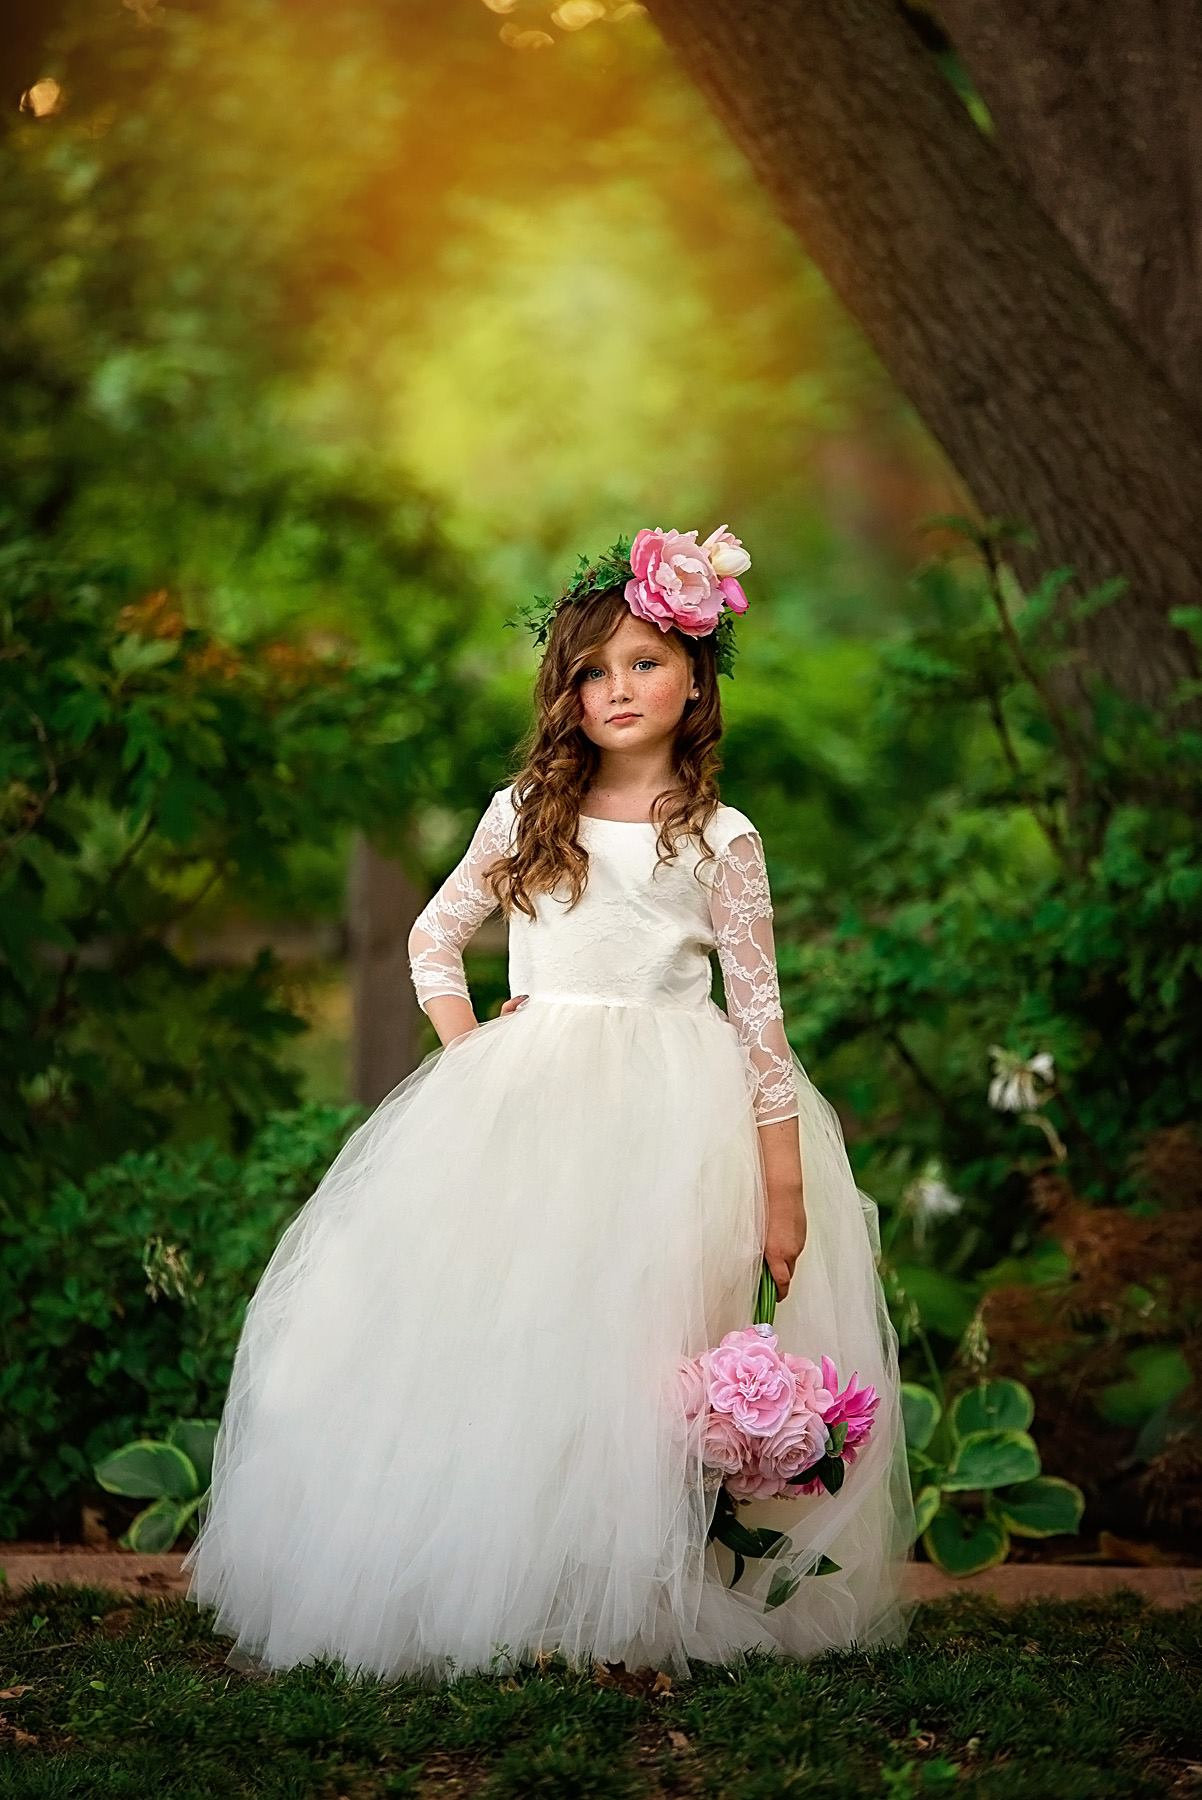 Ivory Lace - Flower Girl Tutu Dress.jpg